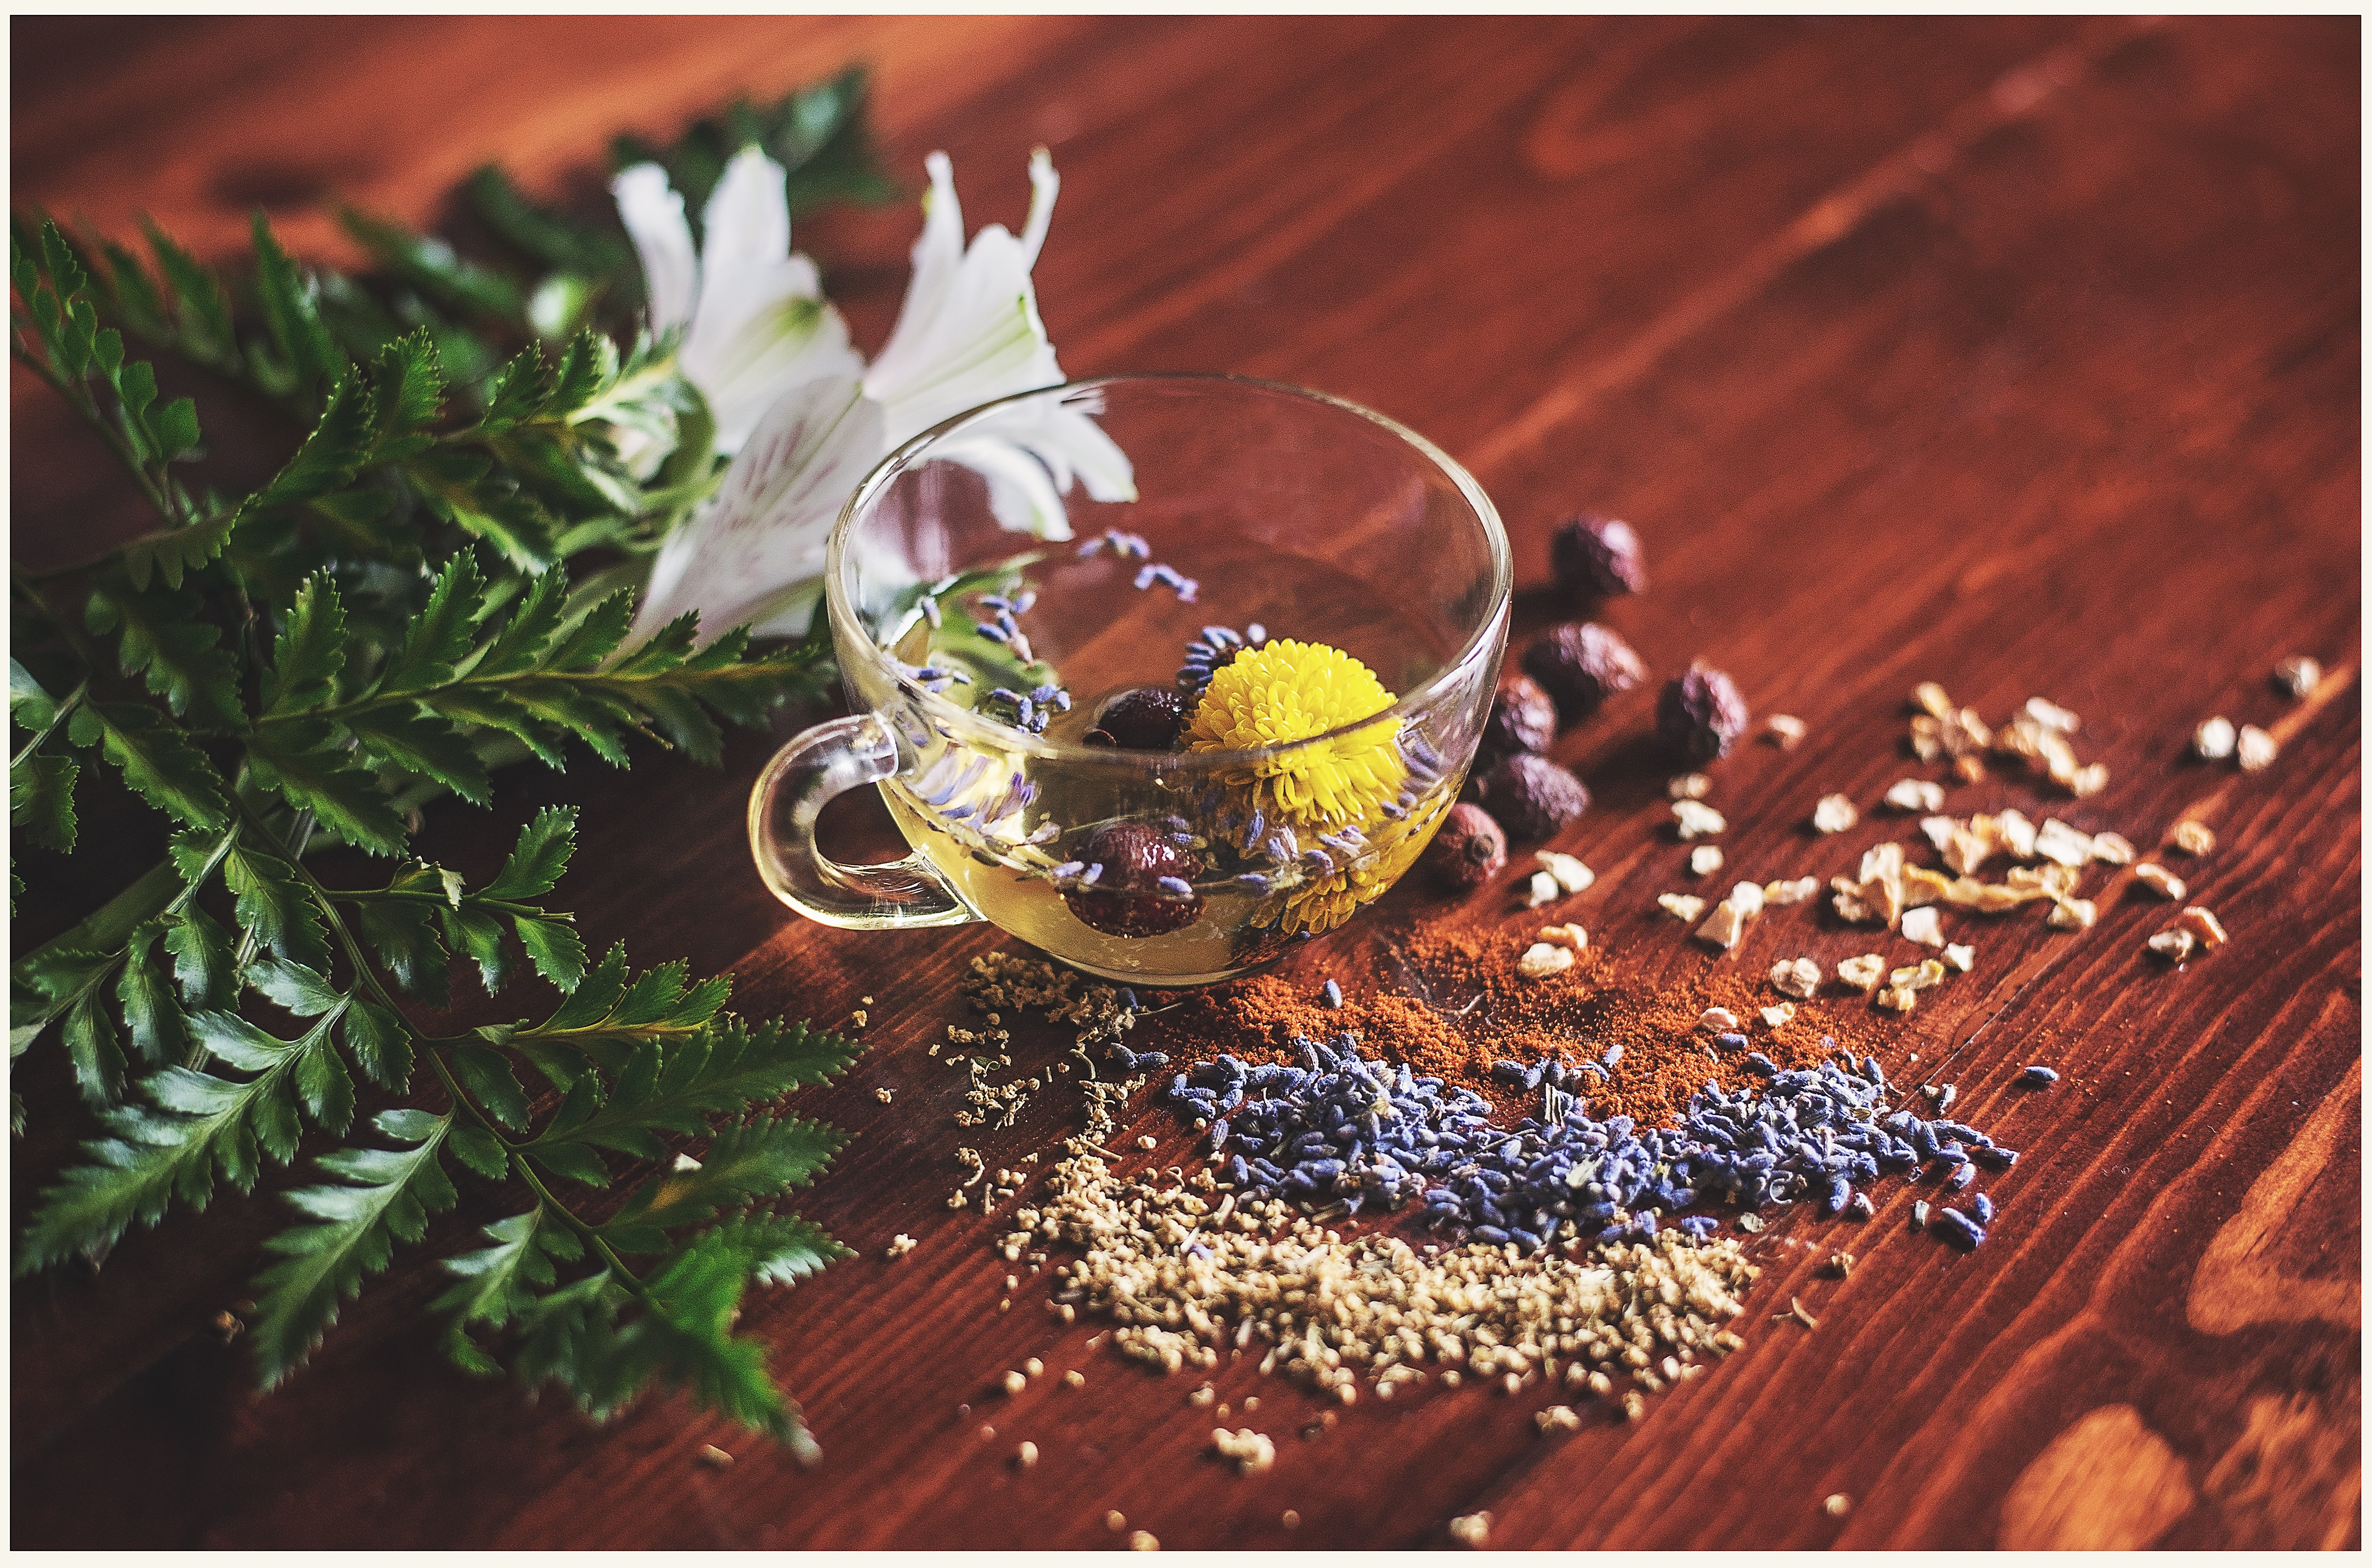 Botanicals and Herbal Remedies | IFIS Publishing